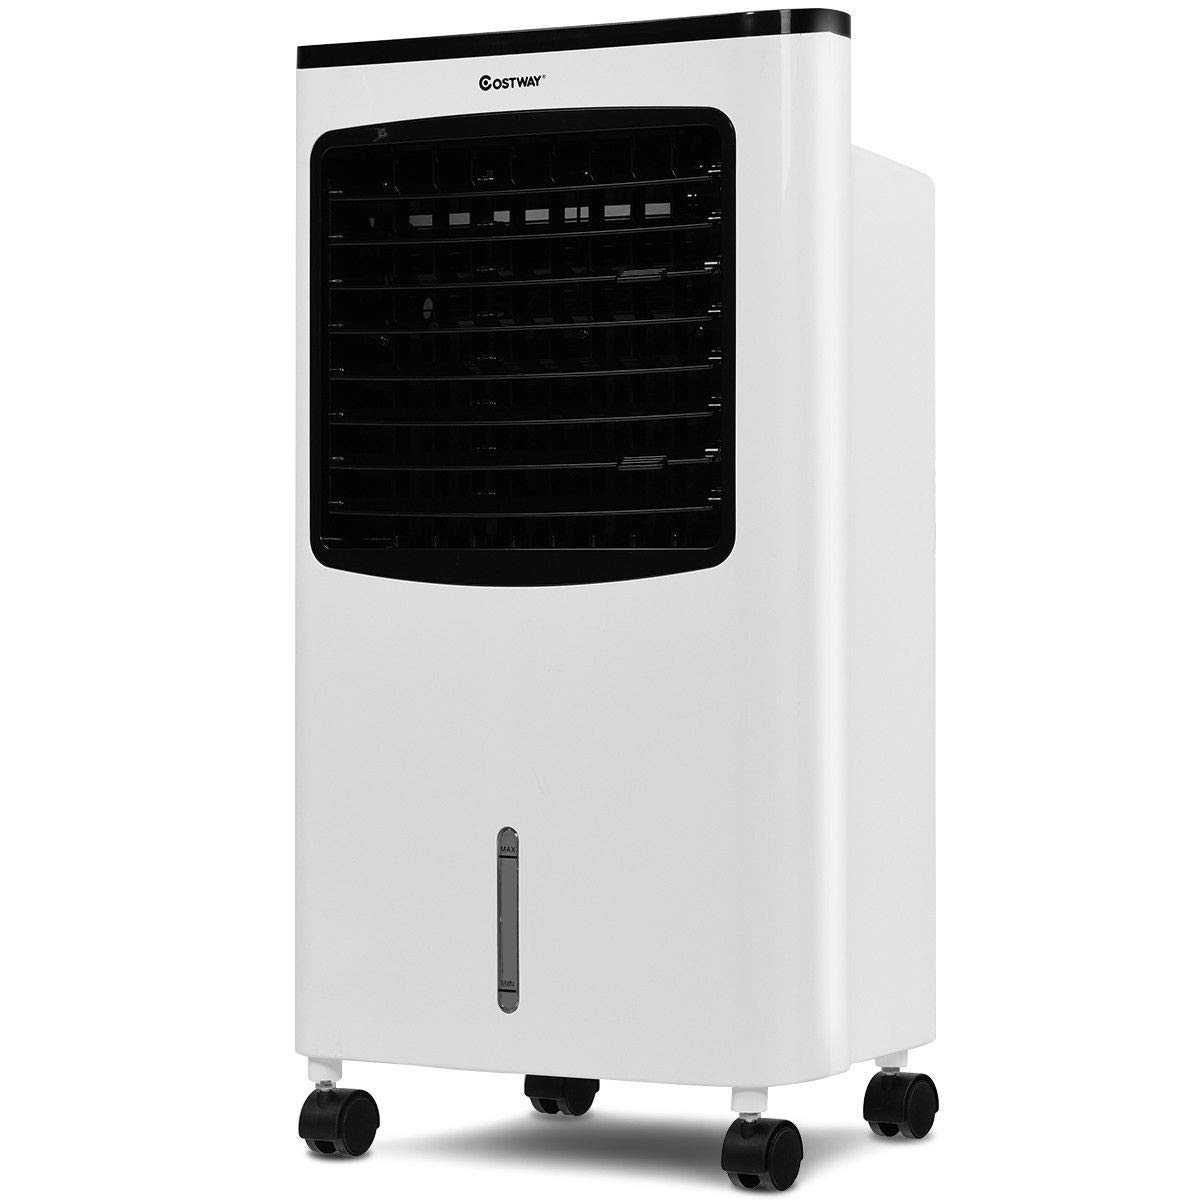 Toolsempire Air Conditioner Cooler with Fan & Humidifier Portable Evaporative Quiet Electric Fan with Filter Knob Control (24 H)